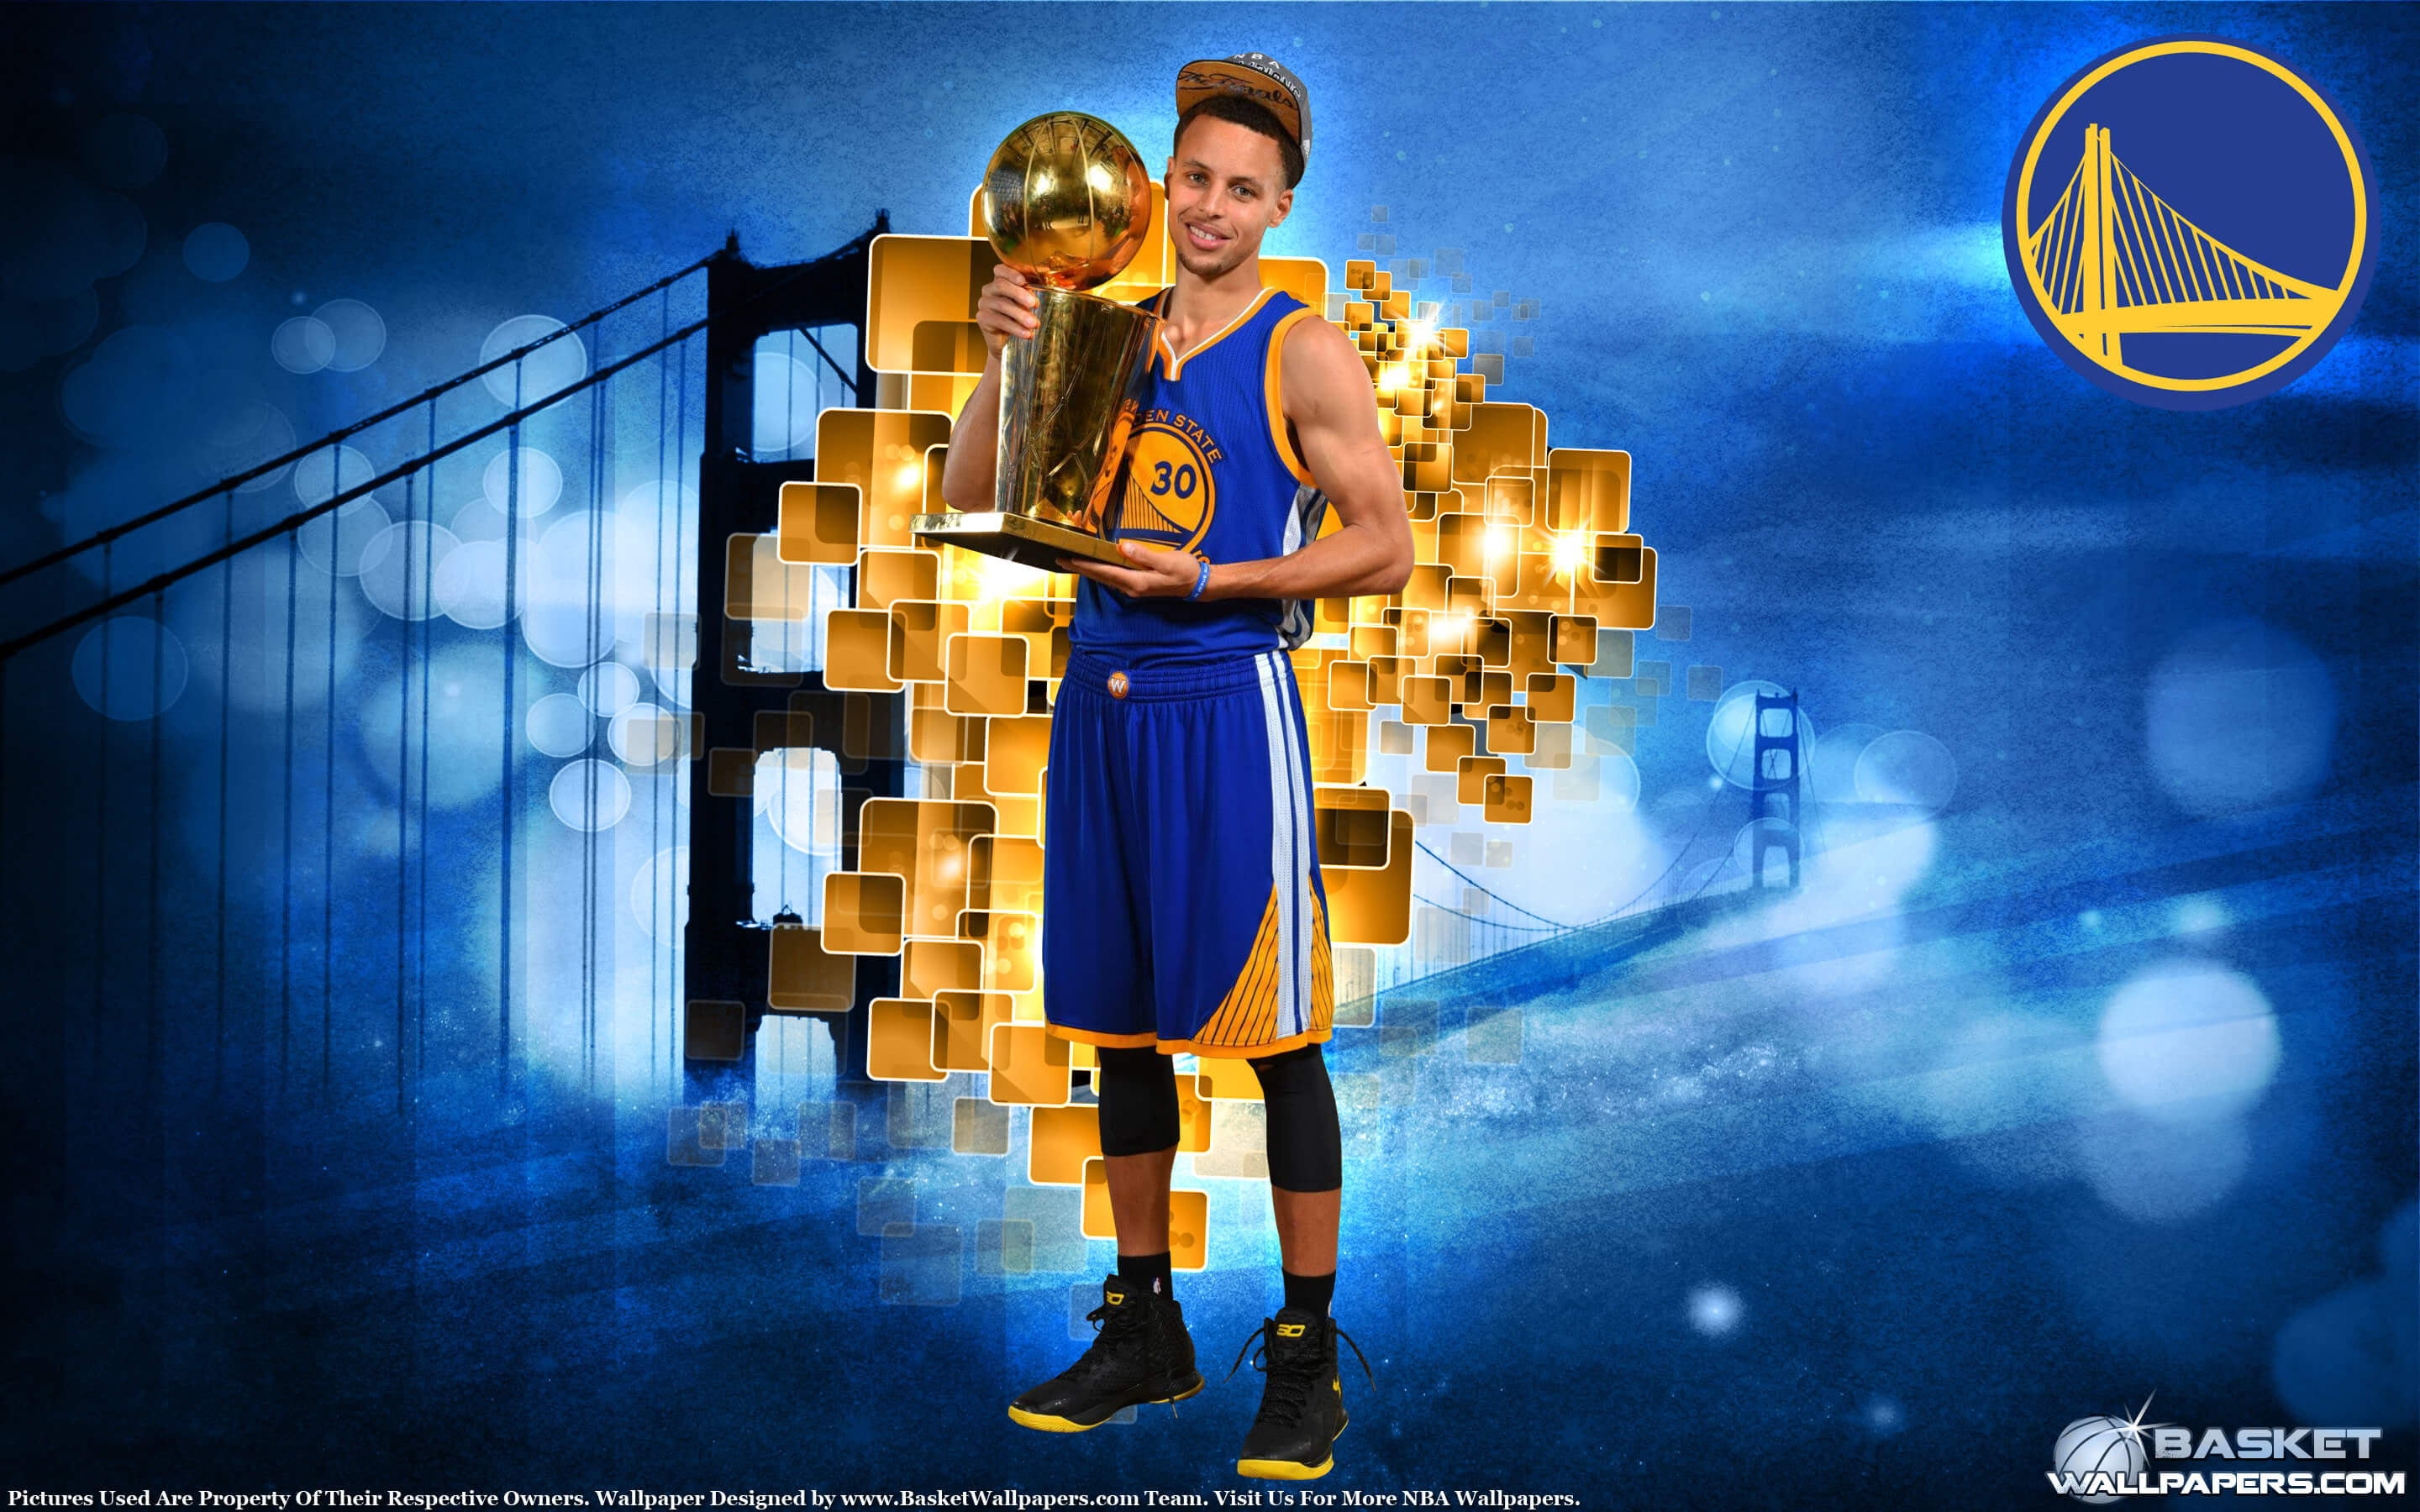 Amazing Stephen Curry Images   Download for Picscompany 2880x1800